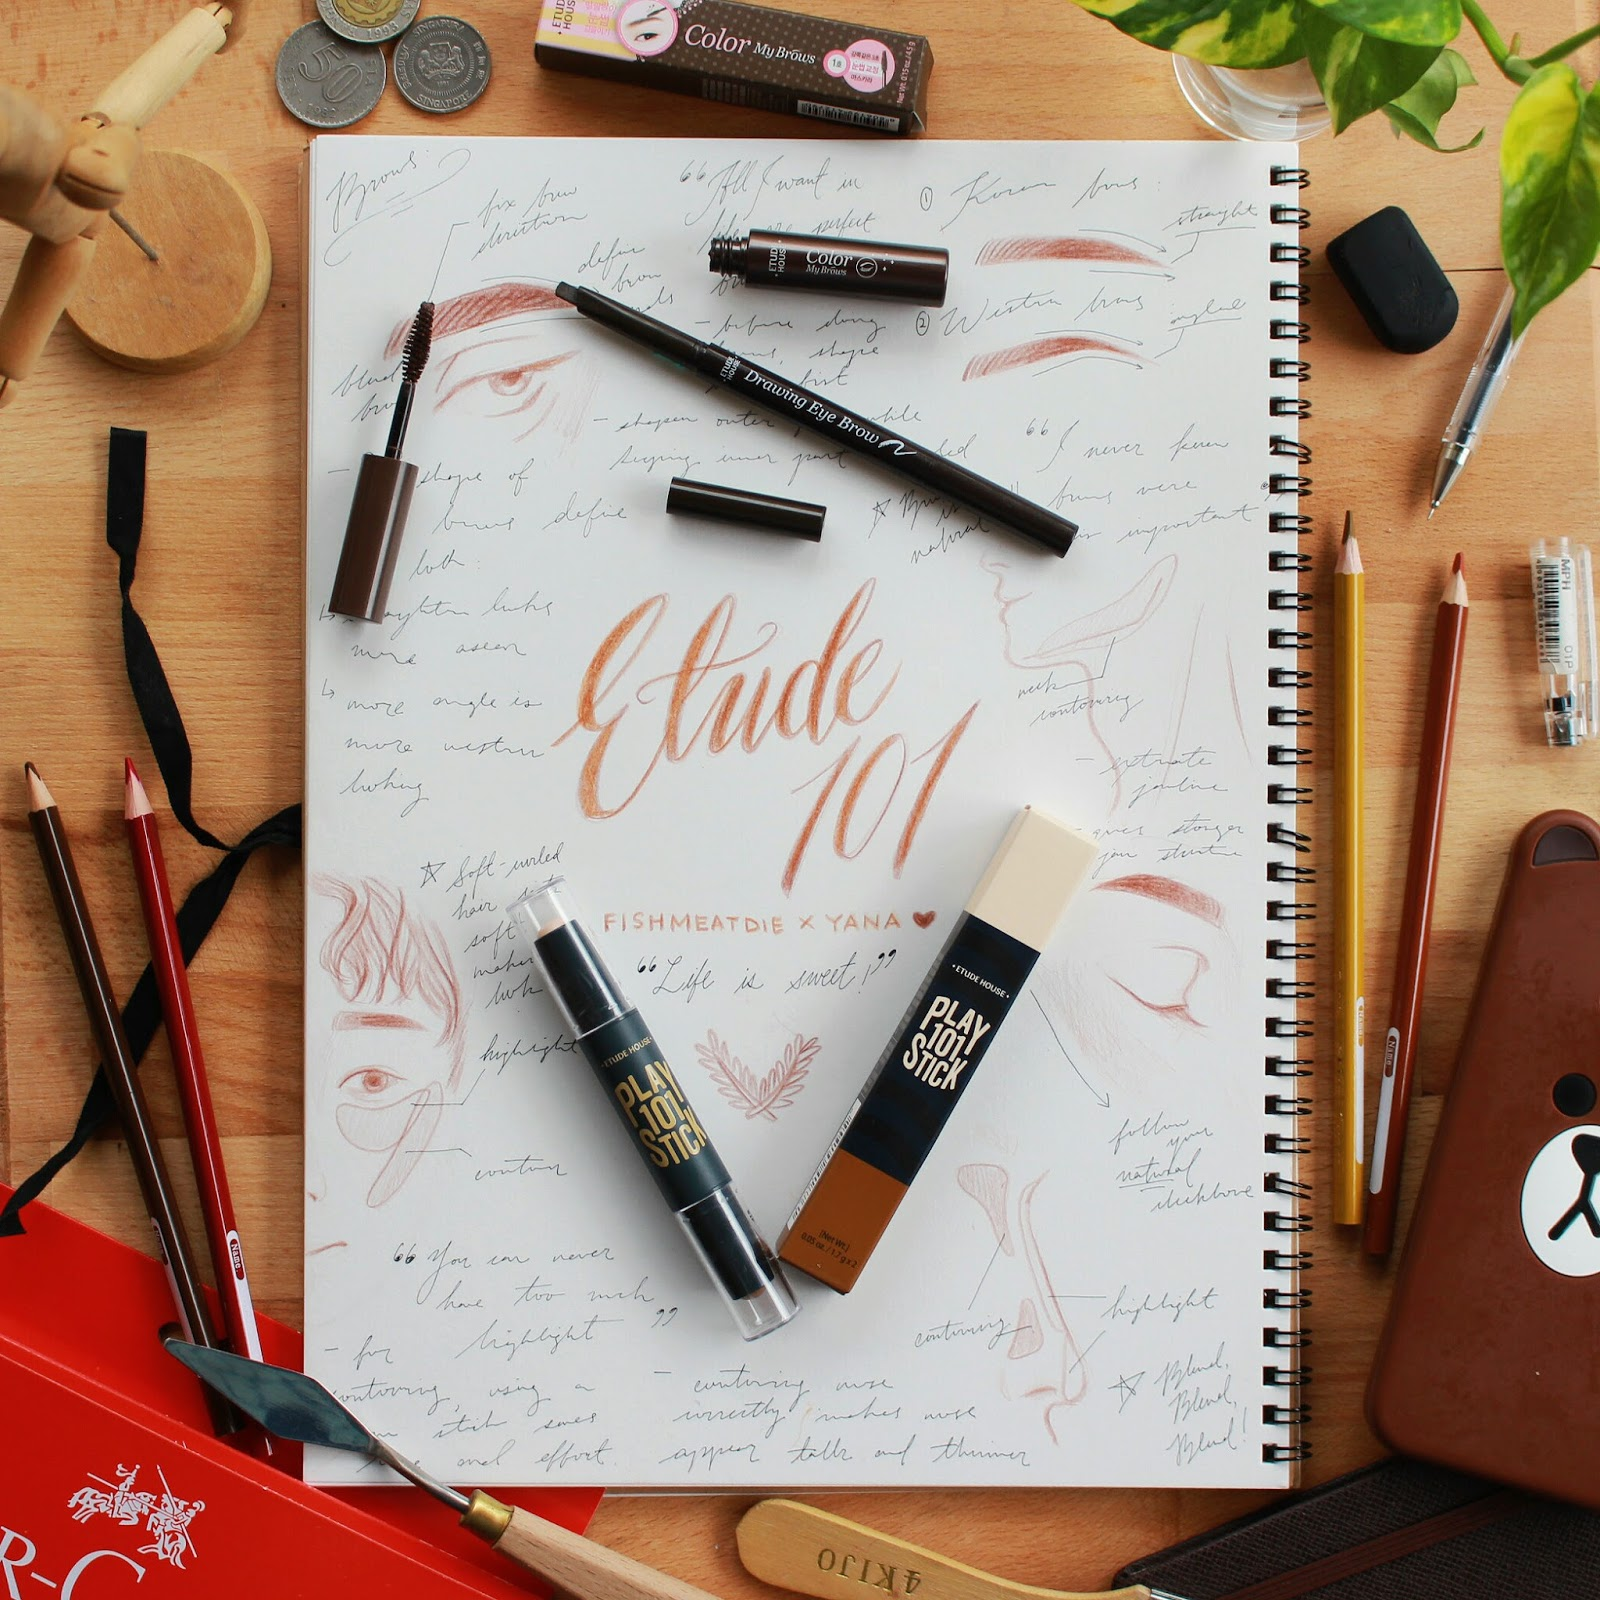 Etude House Drawing Eye Brow Color My Brows Review Fishmeatdie Eyebrow Set Are Super Essential To Any Look They Frame The Face And Mood For Your Whole Theyre Especially Ultra Important Me Because A